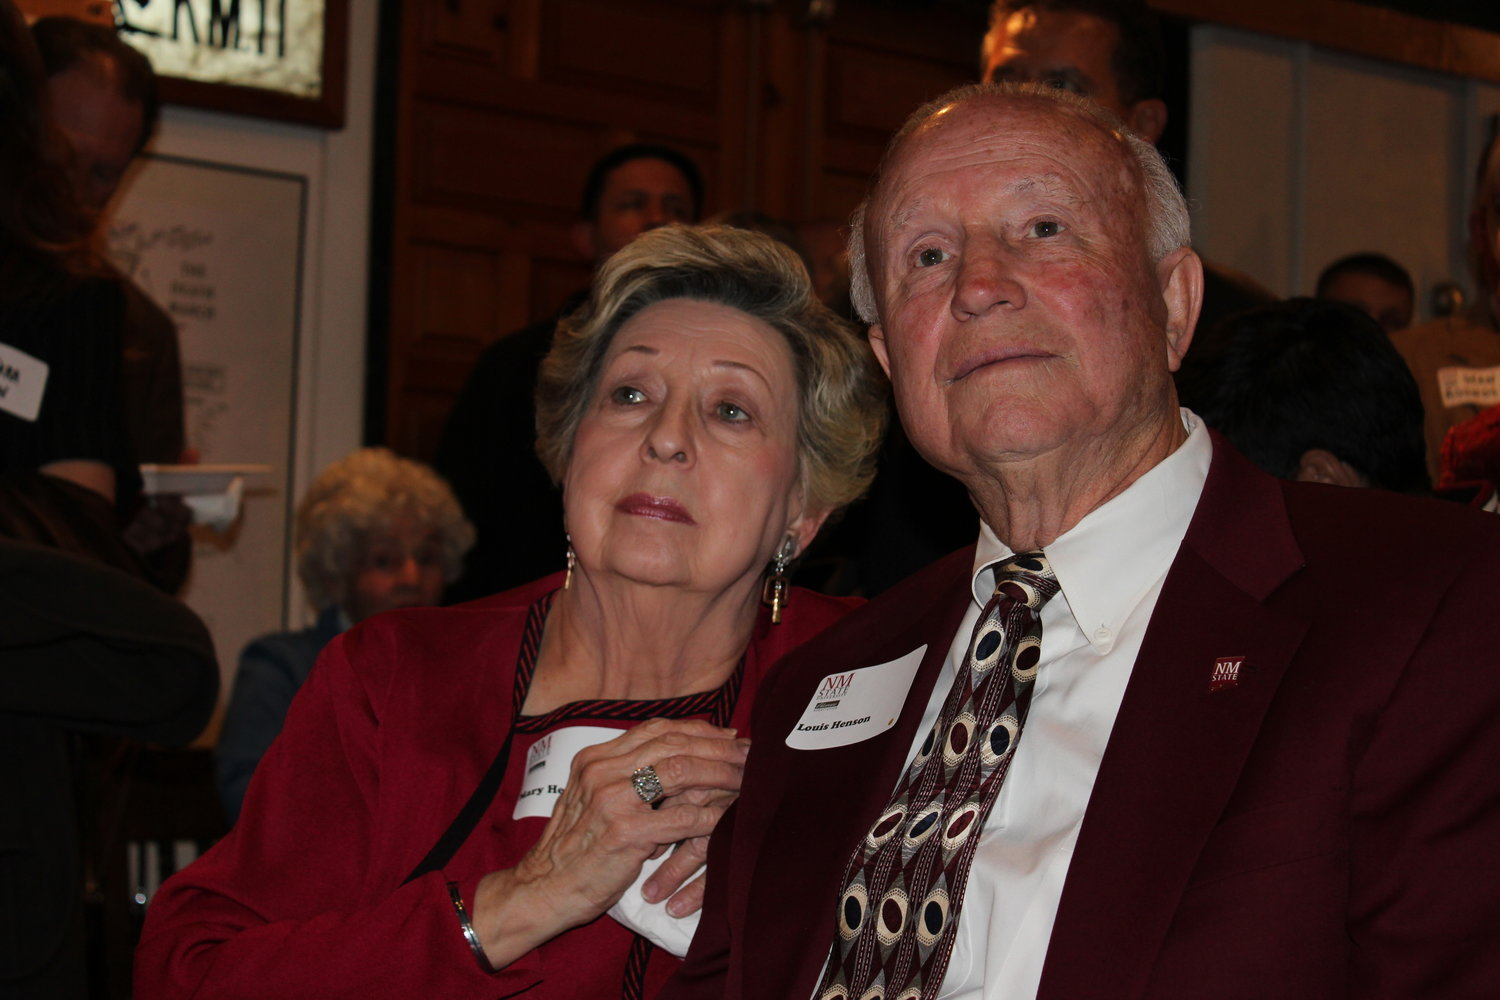 This photo of Lou Henson and his wife, Mary, was taken at his 80th birthday celebration in Santa Fe in 2012.